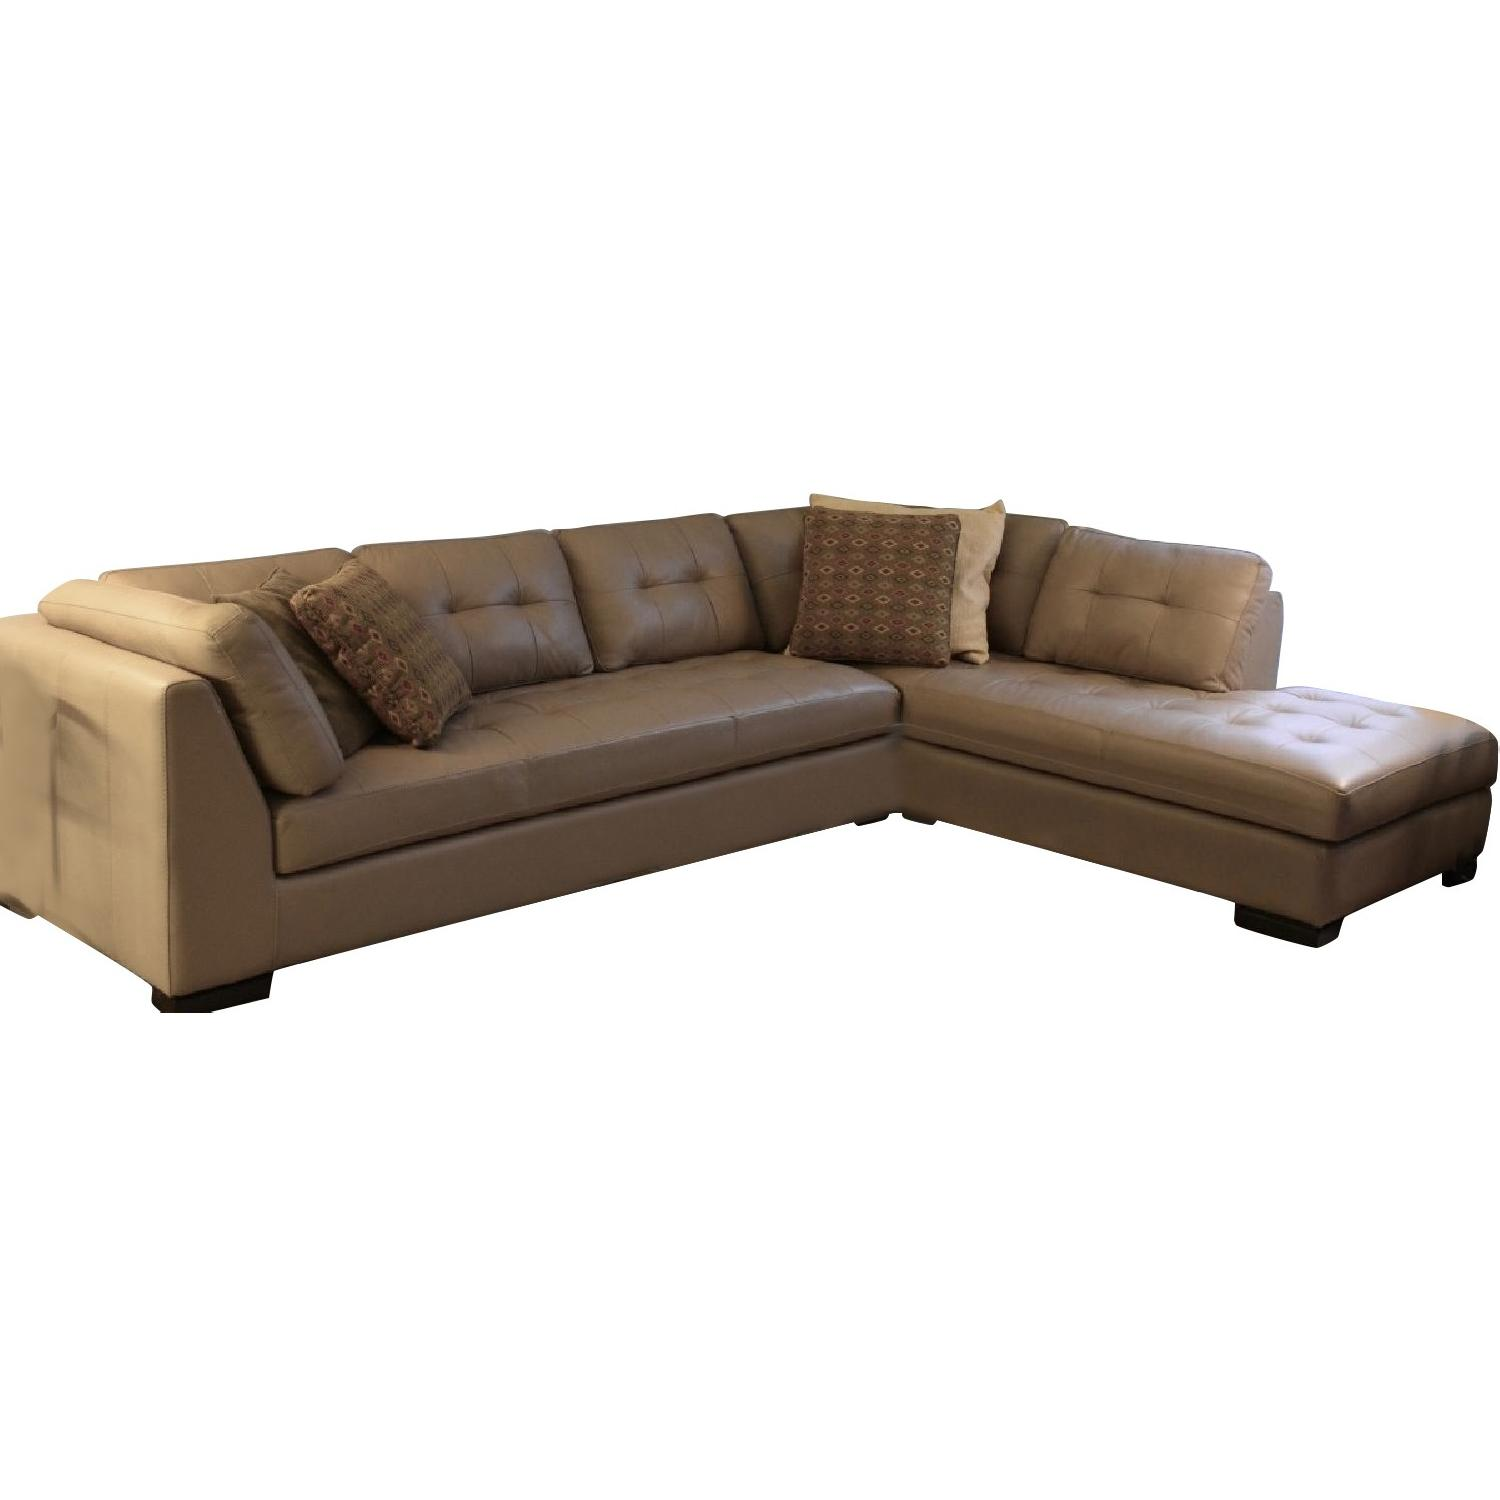 Omnia Newport Handmade Leather 2-Piece Sectional Sofa